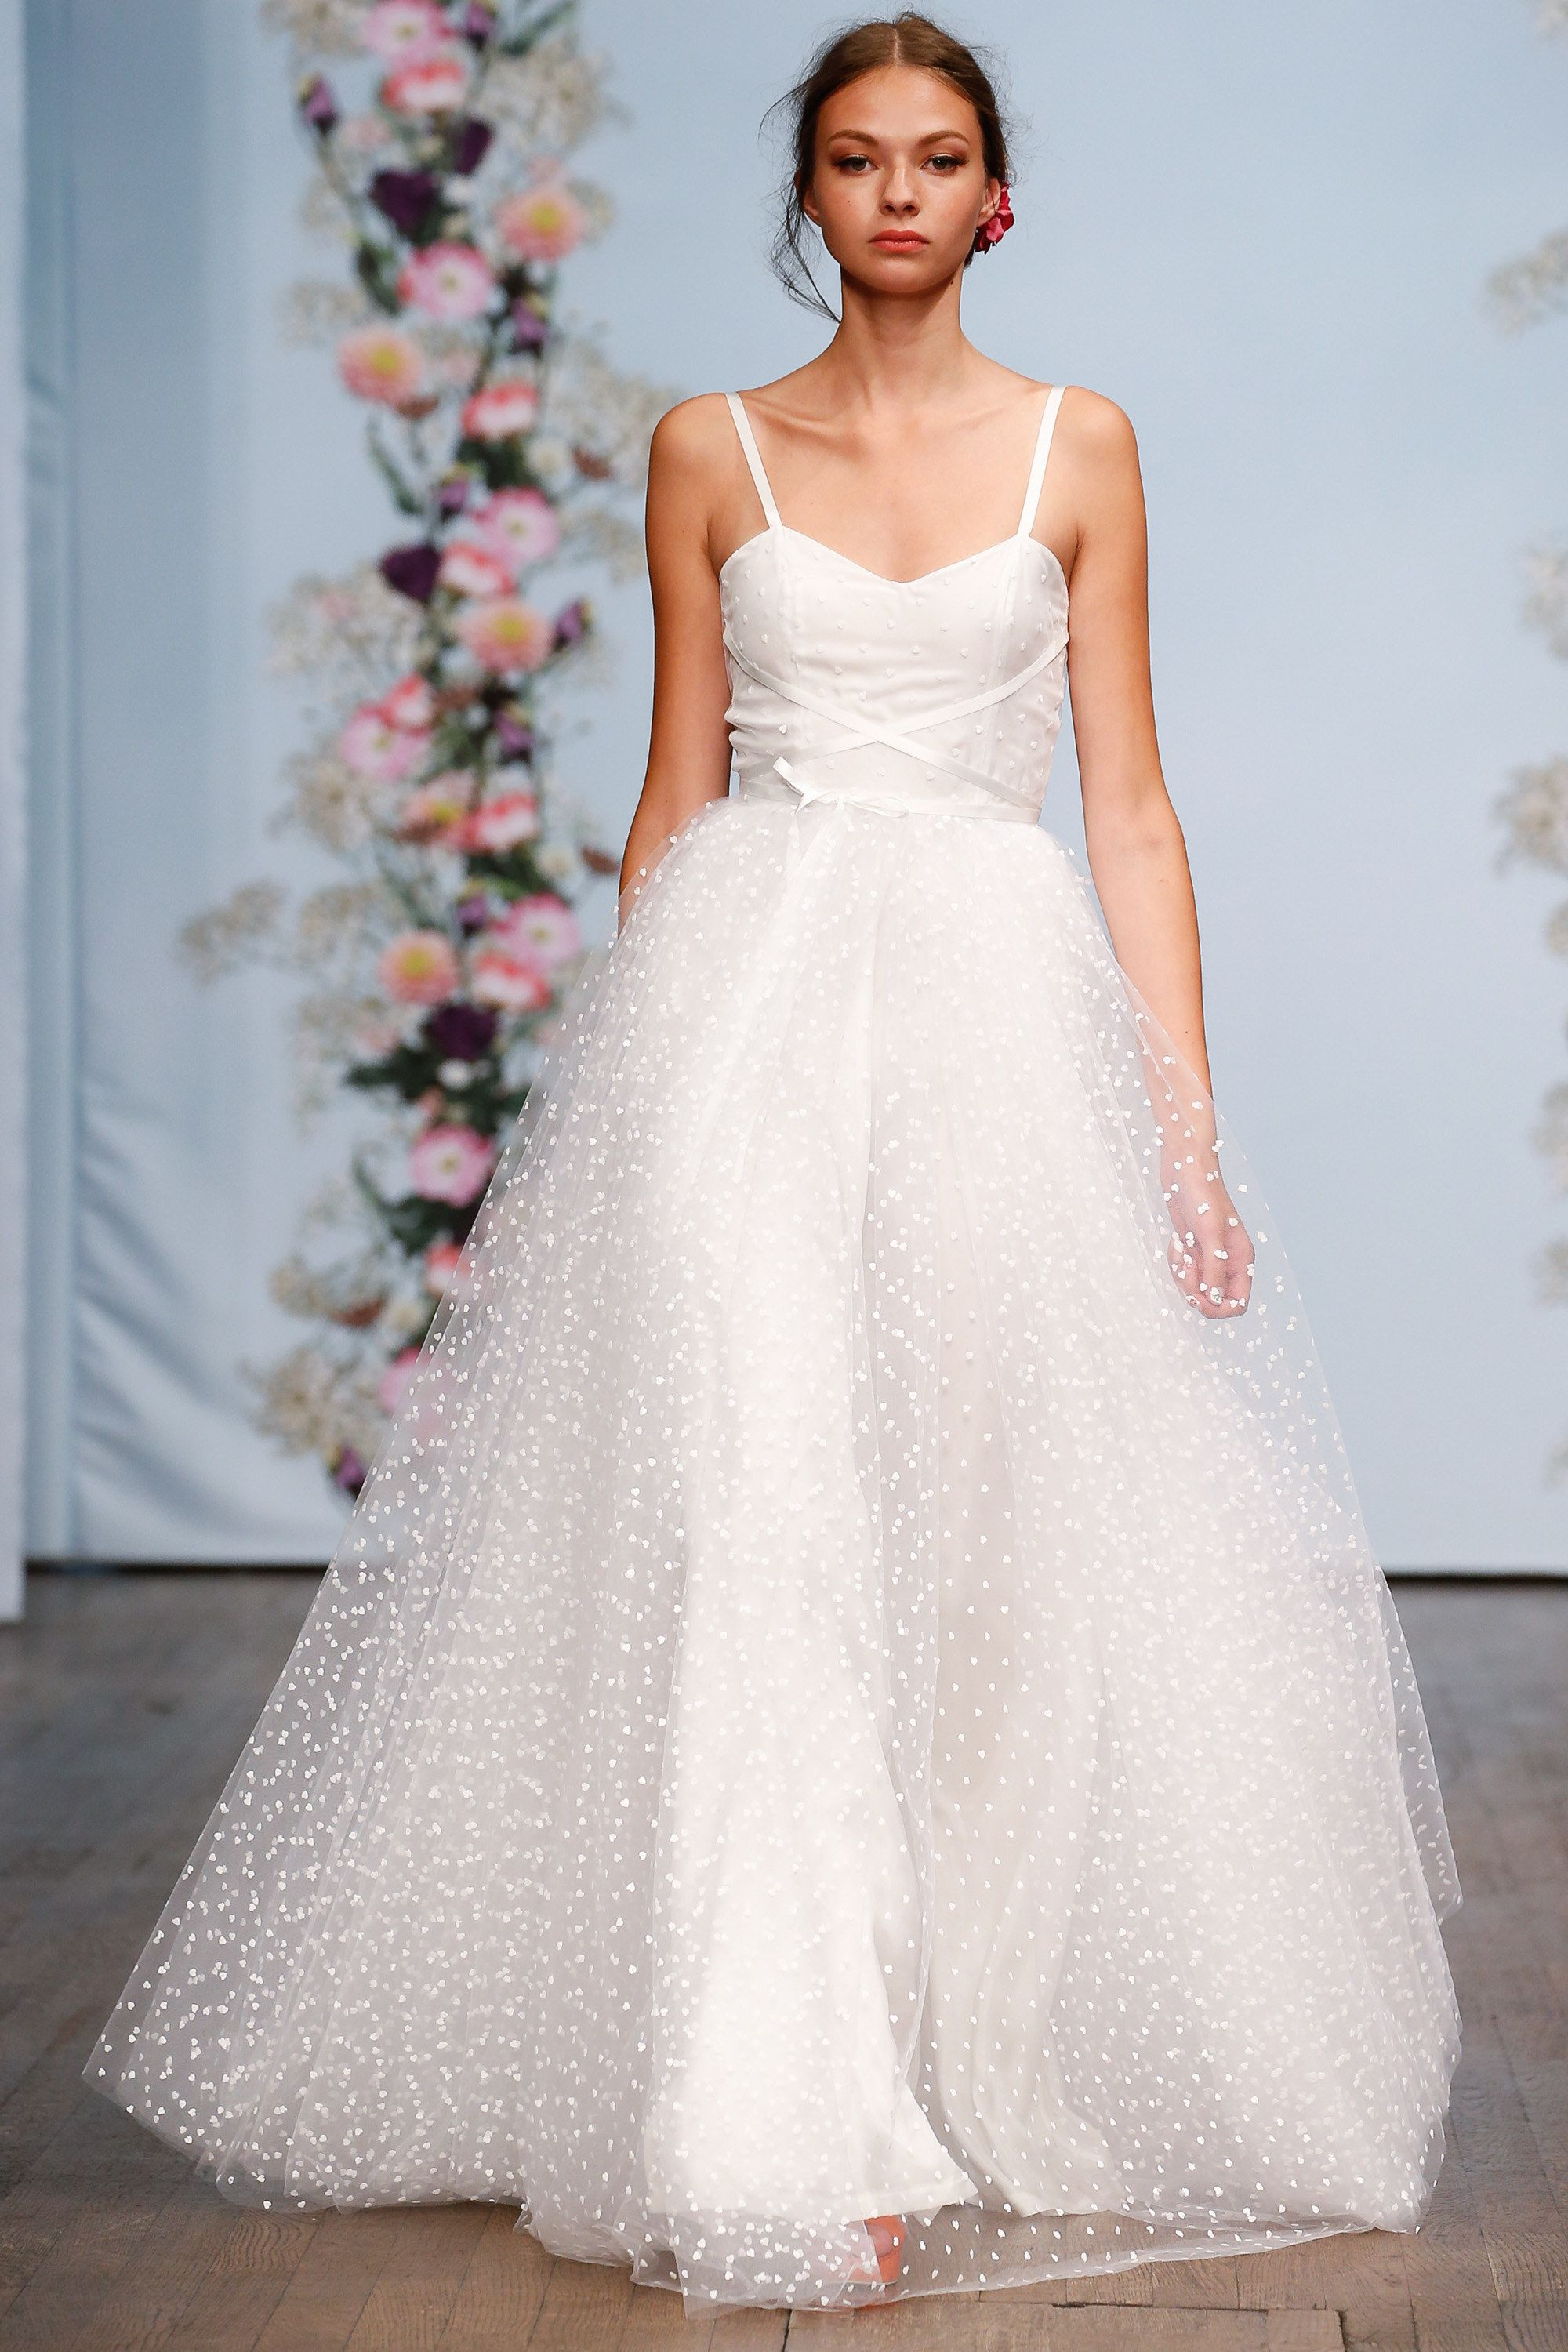 Swiss Dot wedding dress. White dress with swiss dot. Ida Sjöstedt Stockholm  Spring 2016 Fashion Show 175824a1f78